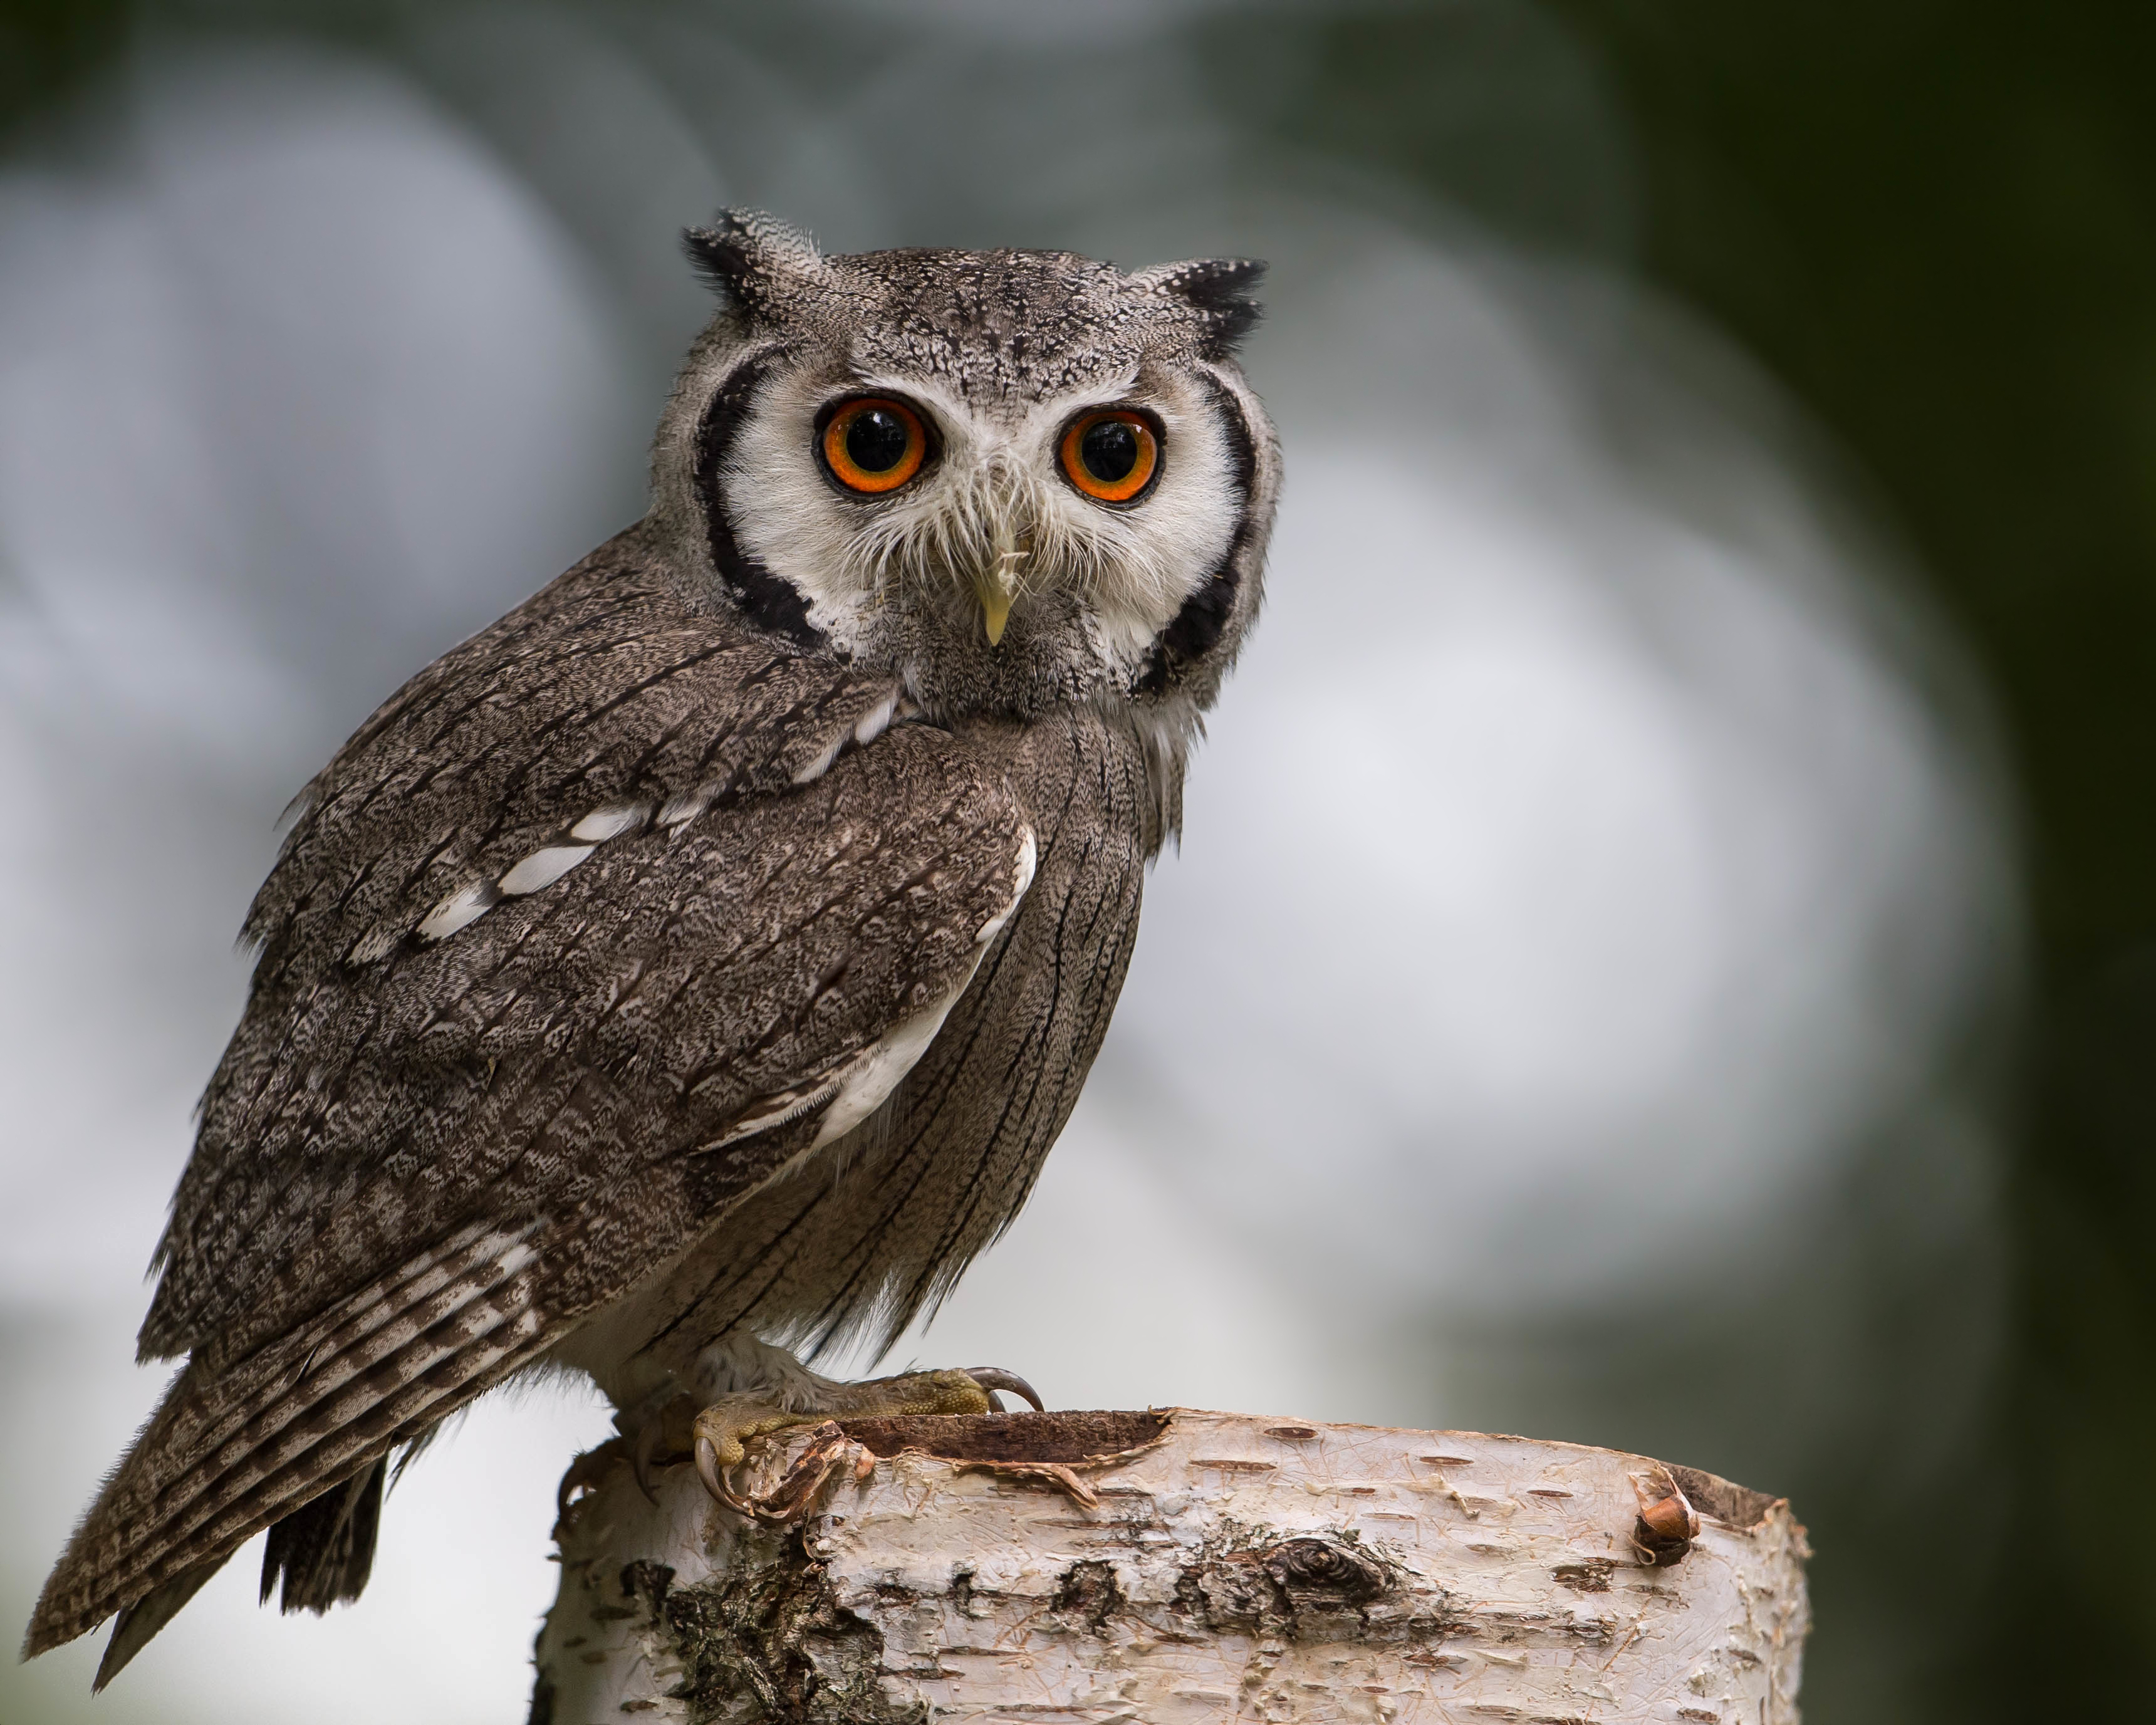 Southern White Faced Owl Wikipedia